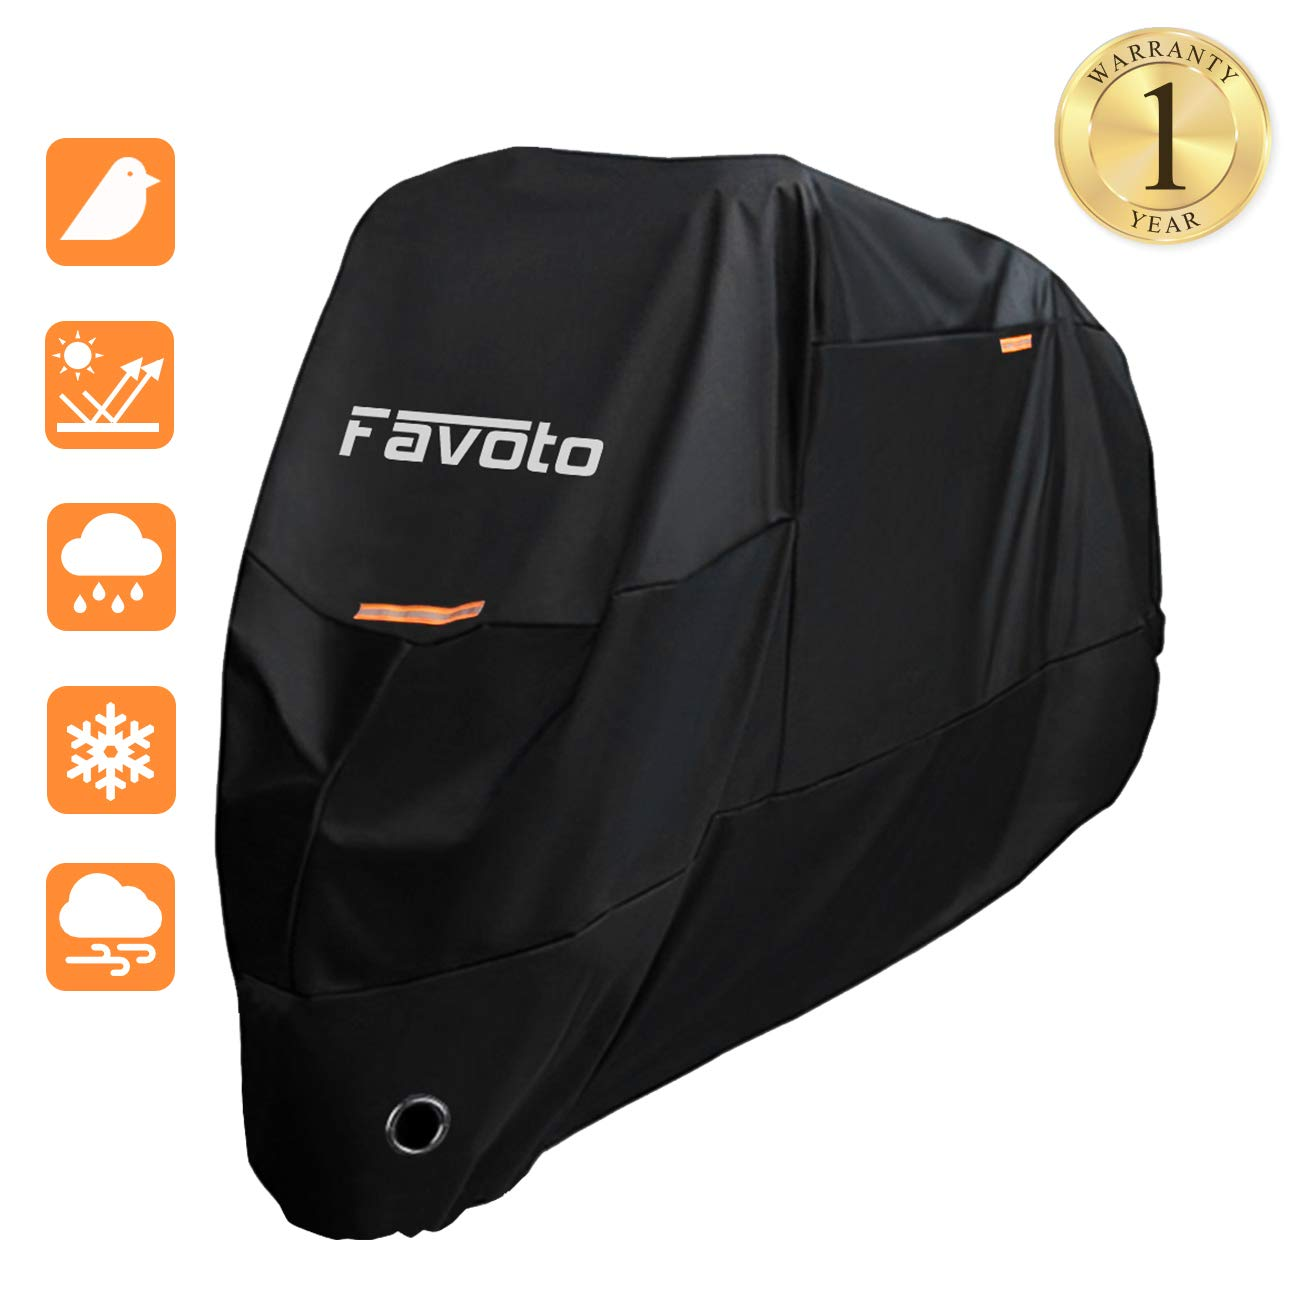 "Favoto Motorcycle Cover Waterproof Motorbike Cover 190T Sun Outdoor Protection Motorbike Rain Cover Windproof Anti UV Scratch Bird Droppings with Storage Bag 104"" Orange Black"